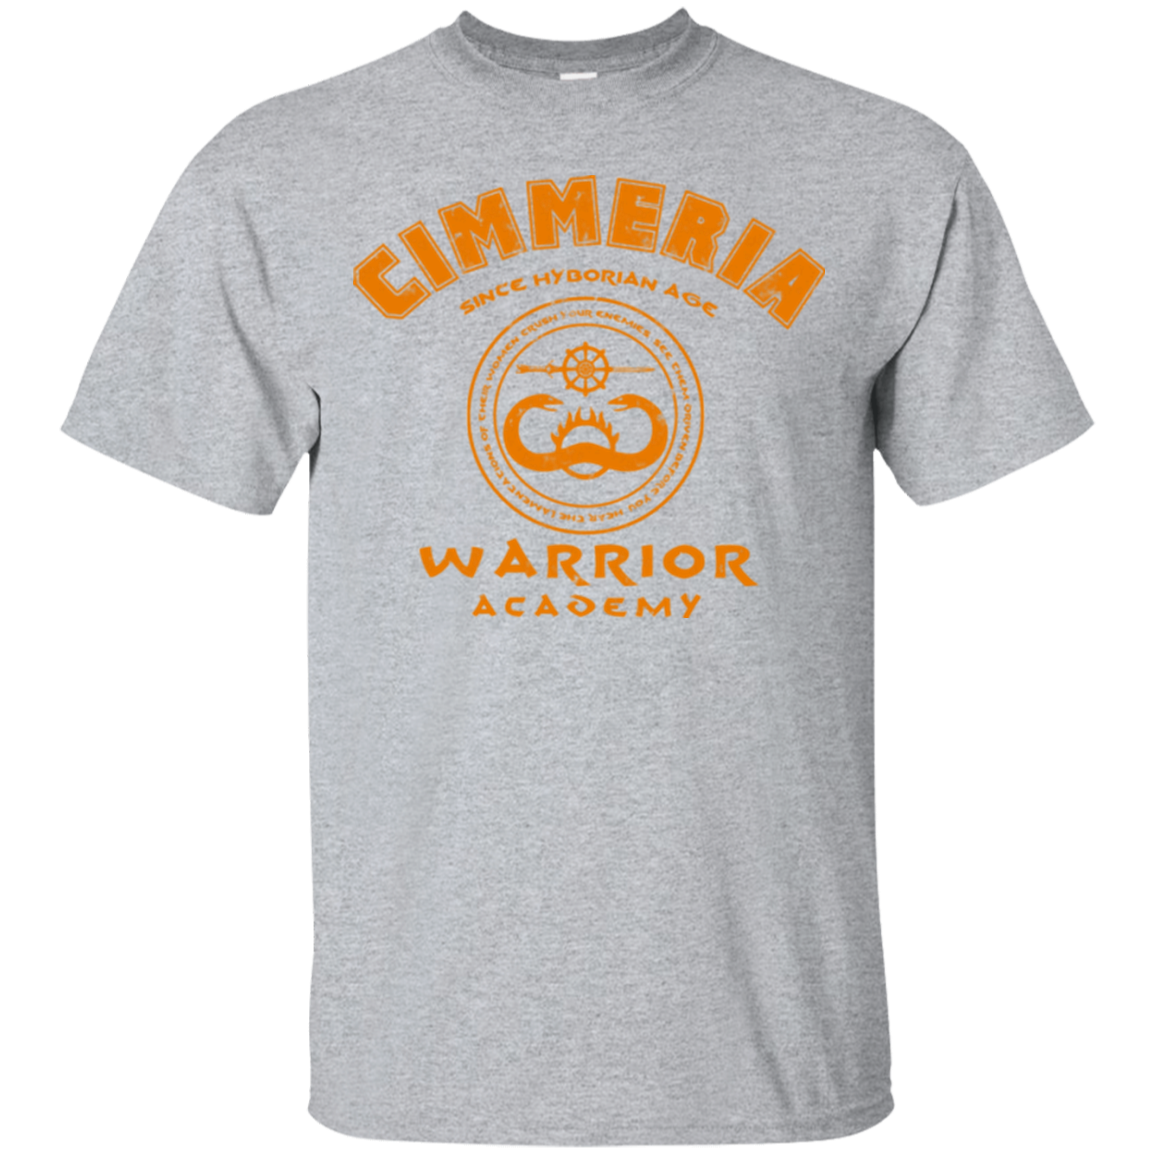 Cimmeria Warrior Academy T Shirt